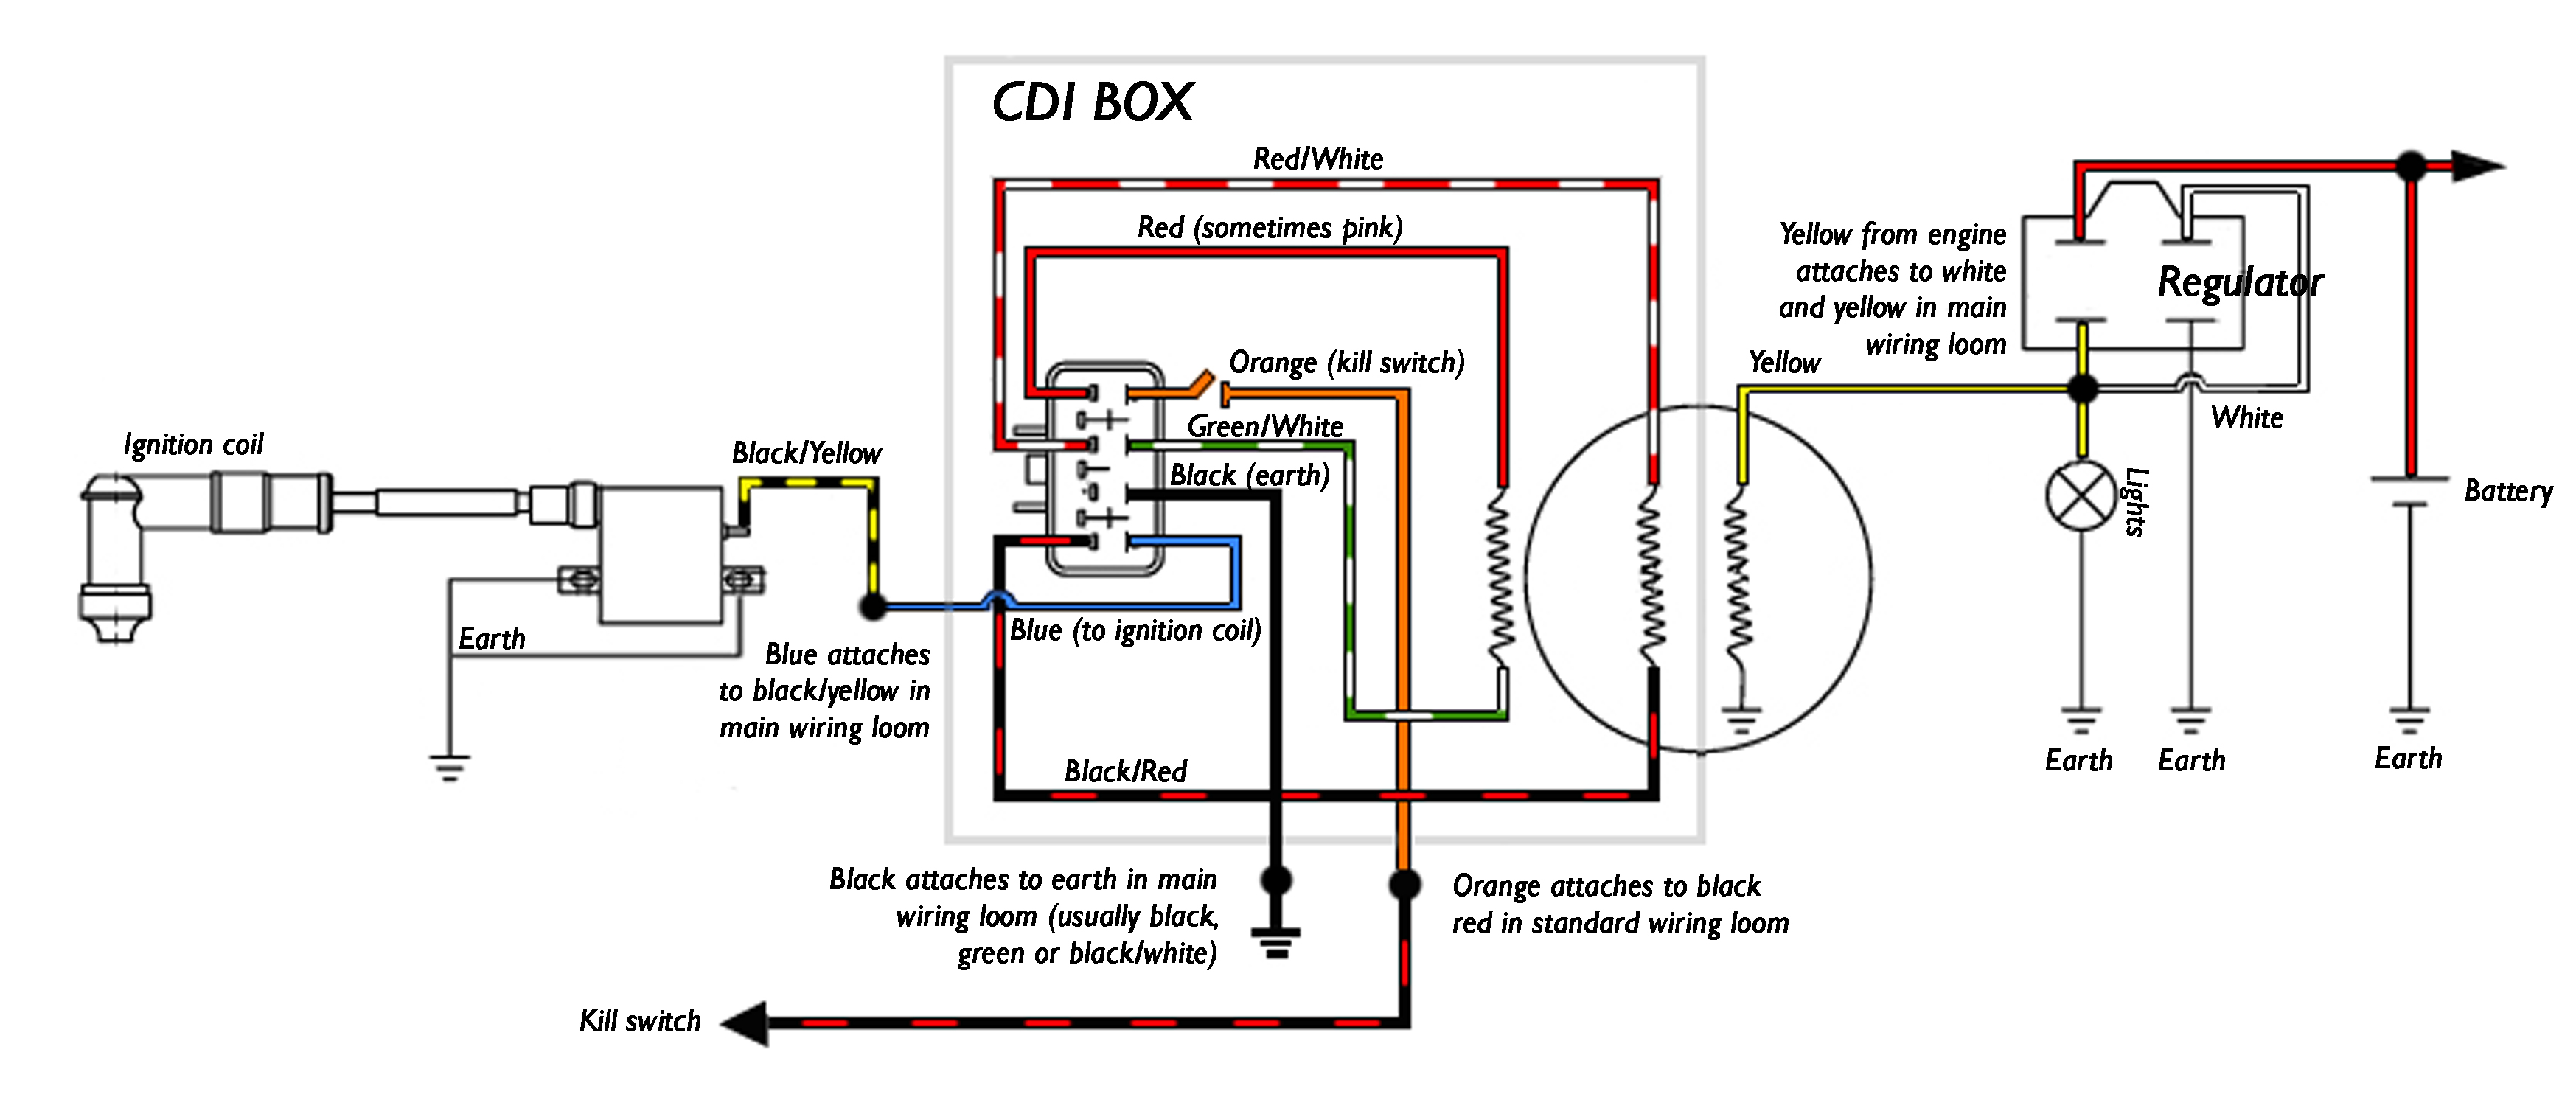 zongshen wiring diagram zongshen image wiring diagram wiring diagram zongshen wiring diagram on zongshen wiring diagram